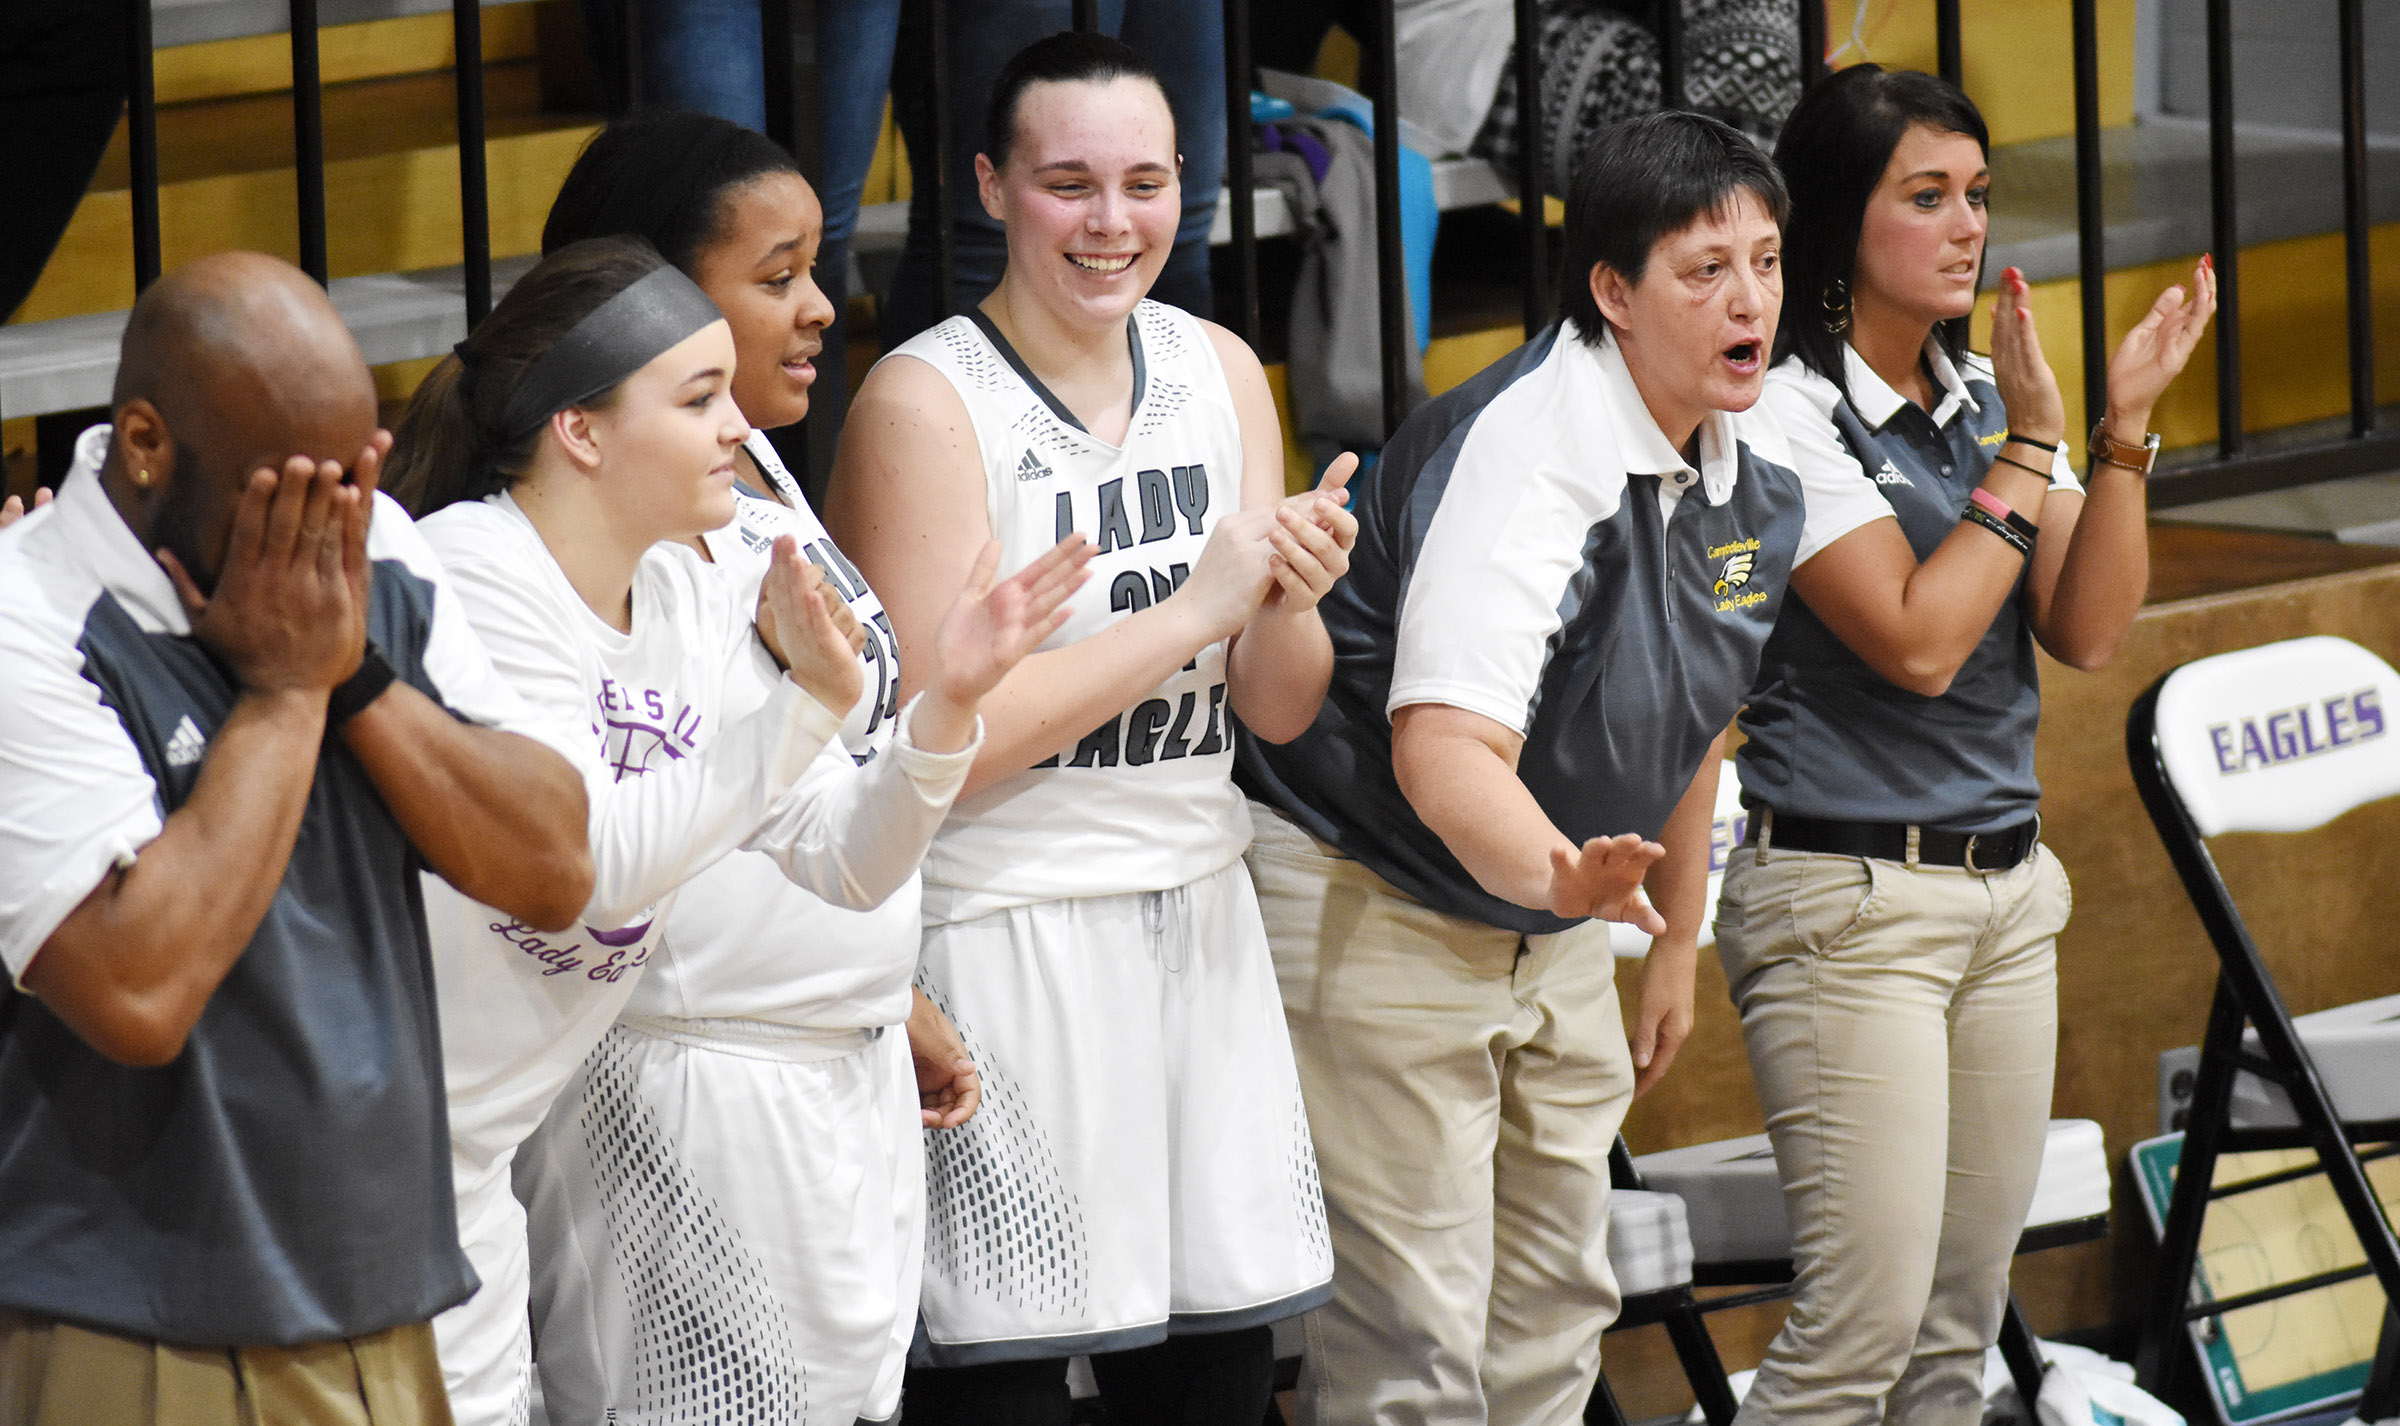 CHS girls' basketball coaches and players cheer as the clock expires.